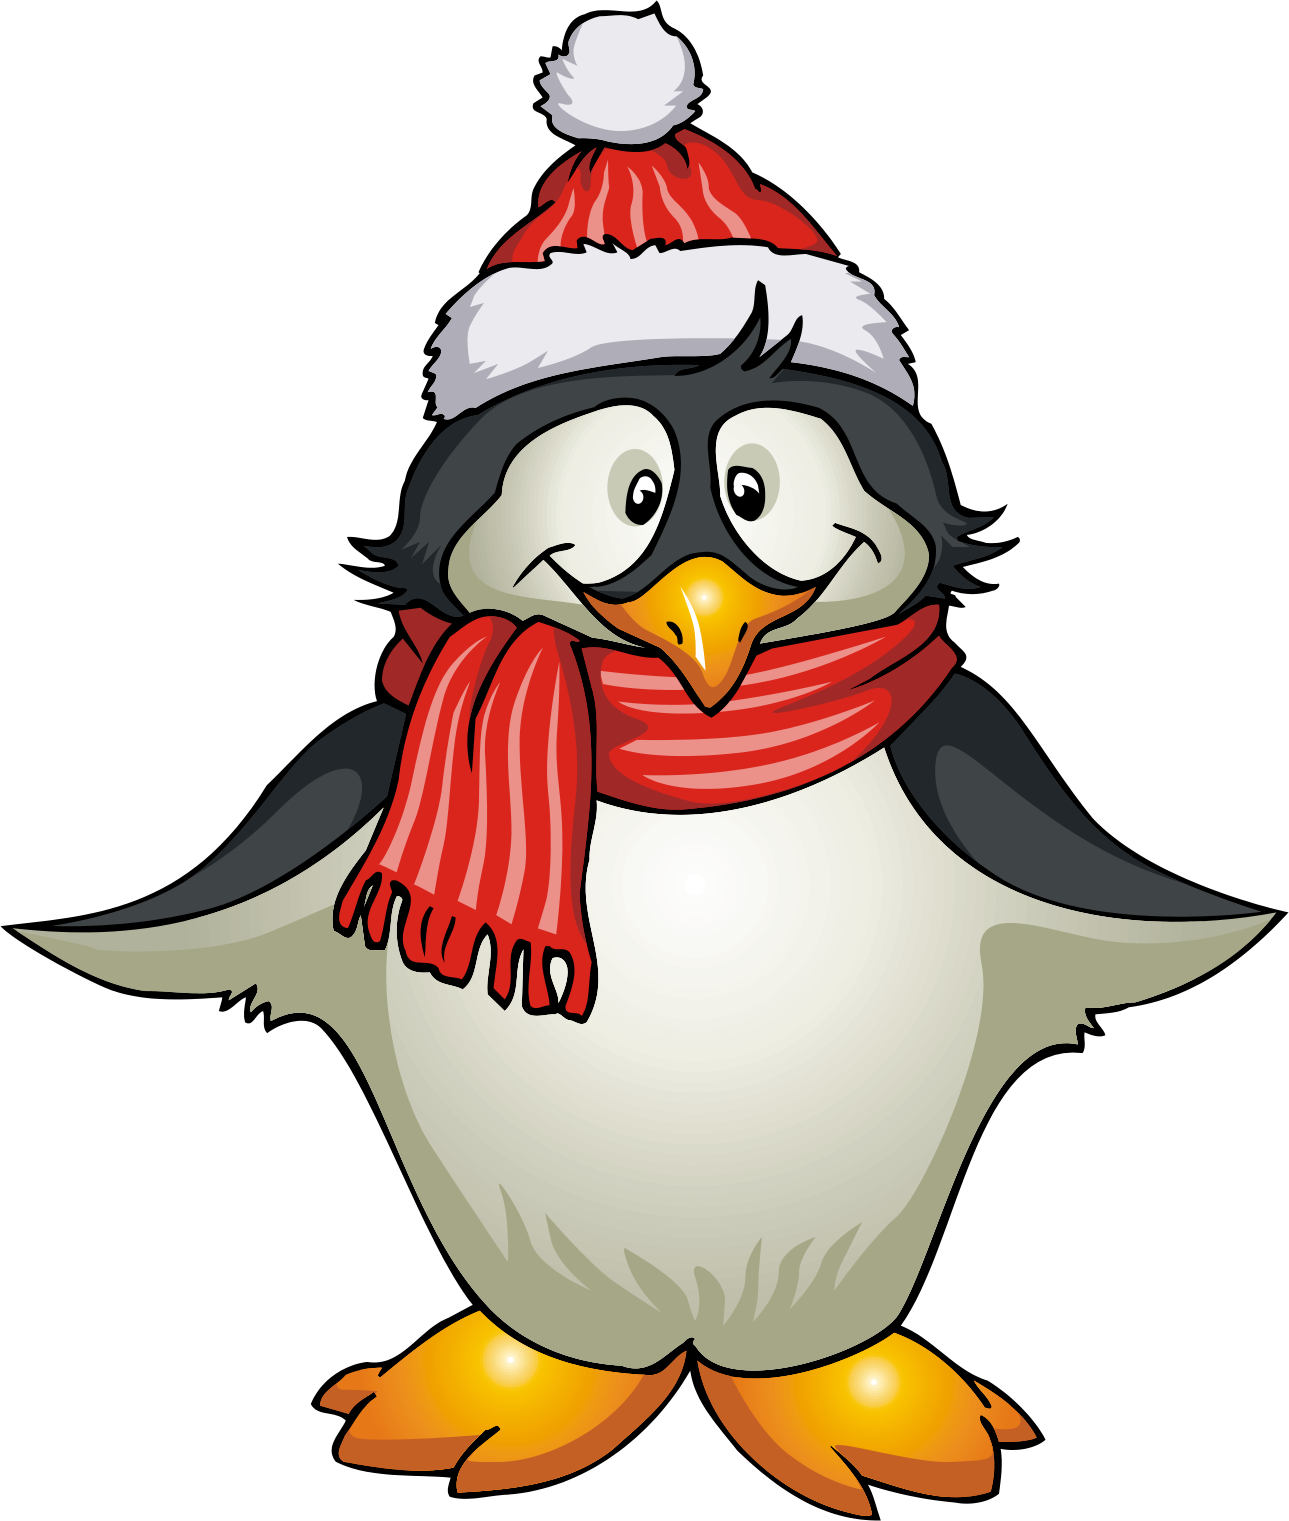 holiday penguin clipart clipart panda free clipart images Penguins Christmas Tree Clip Art christmas penguin clipart black and white